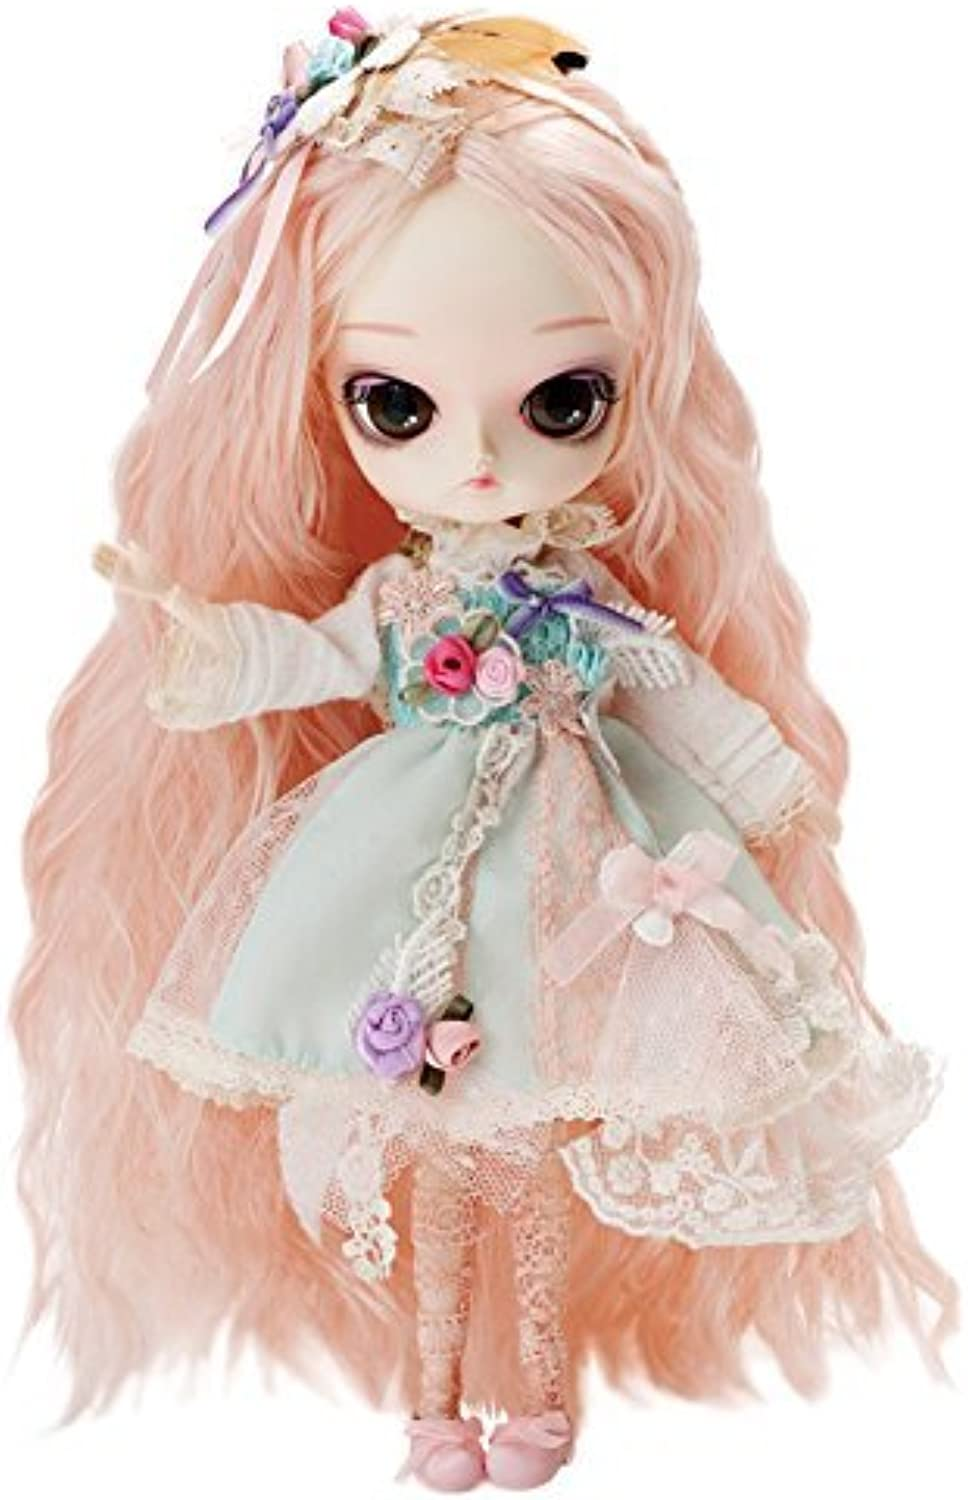 DAL Cherry sweet (Cherry suite) D-158 Height approx 268mm ABS-painted action figure by Groov-e